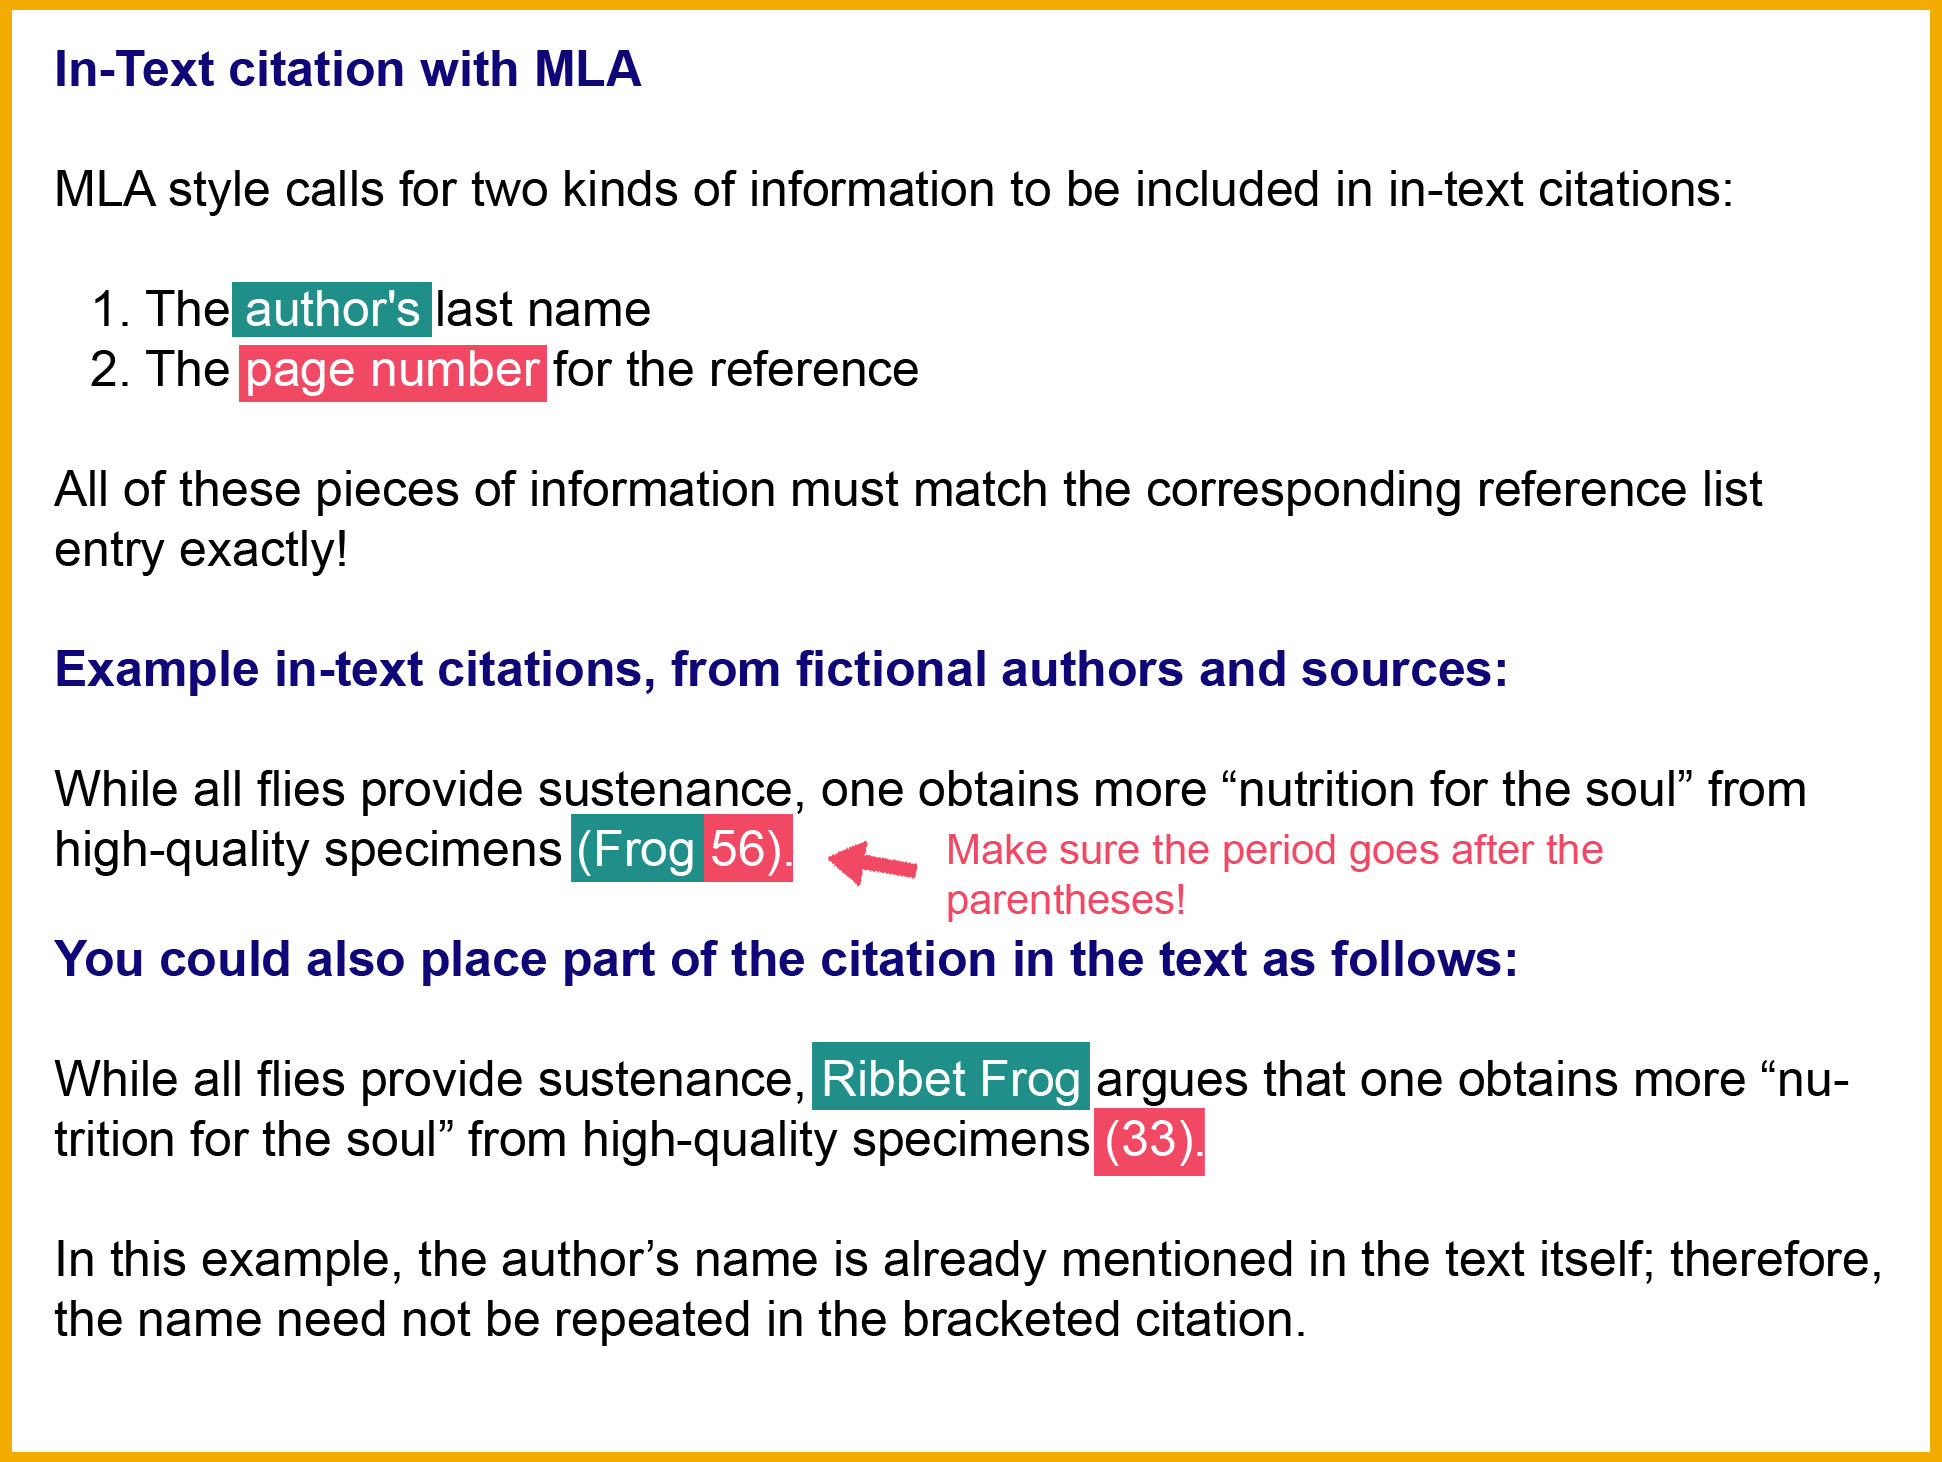 mla citation - transition year program - libguides at dalhousie